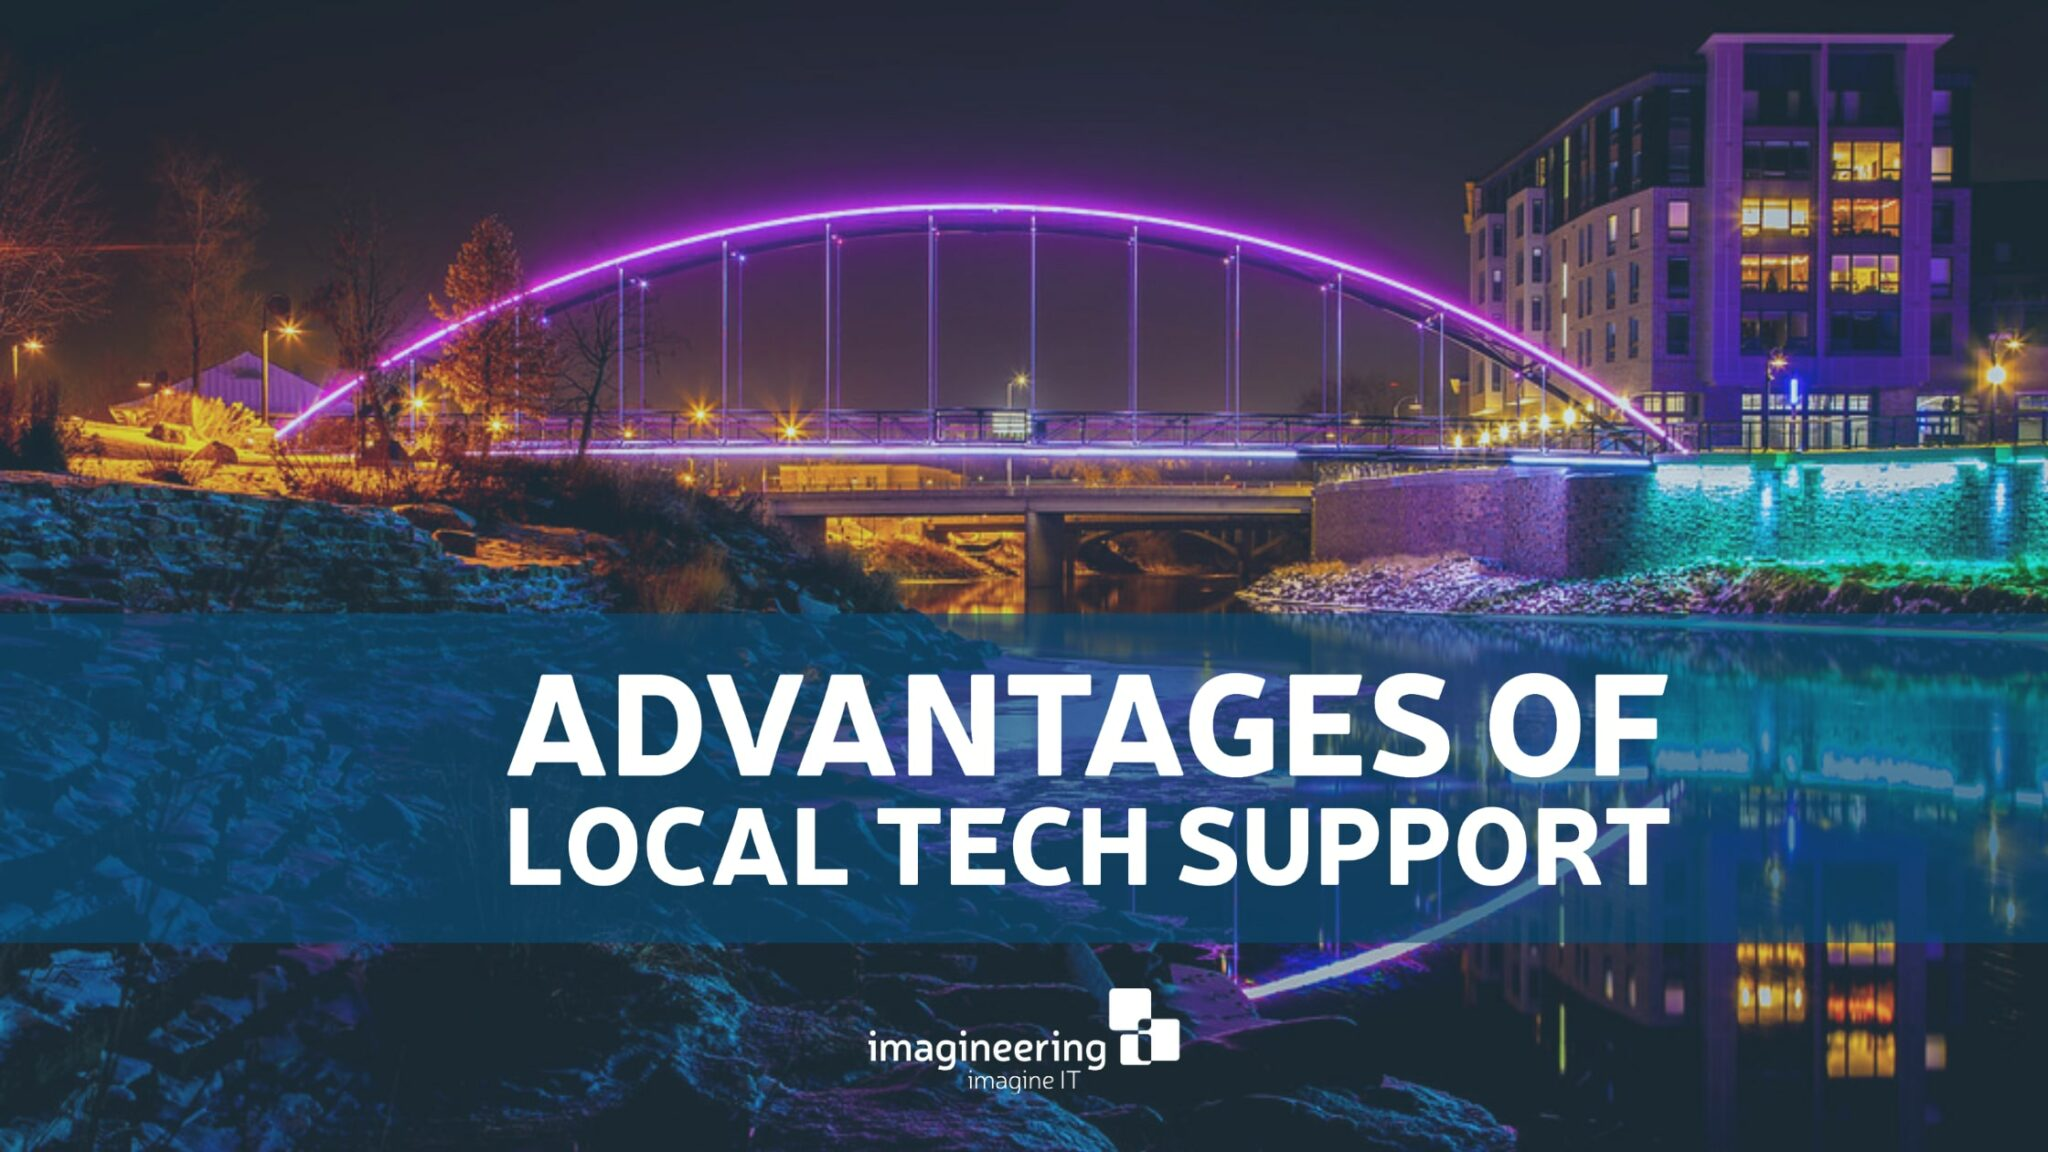 Advantages of Local Tech Support